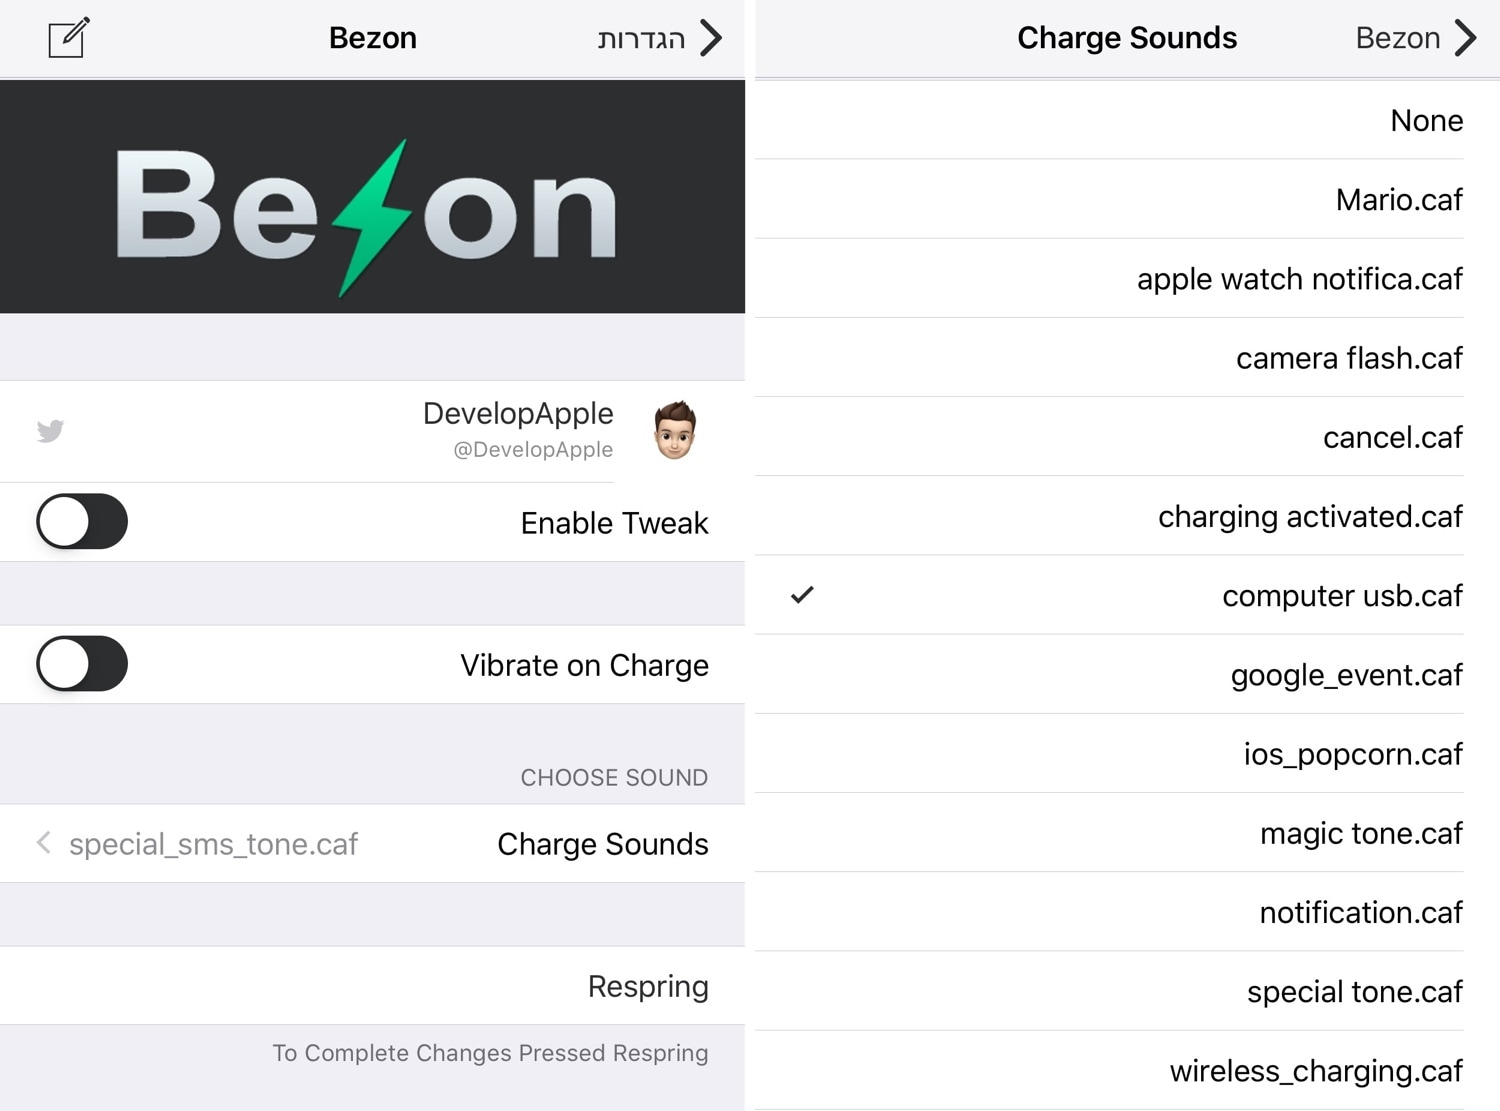 Customize your iOS device's charging sound with Bezon